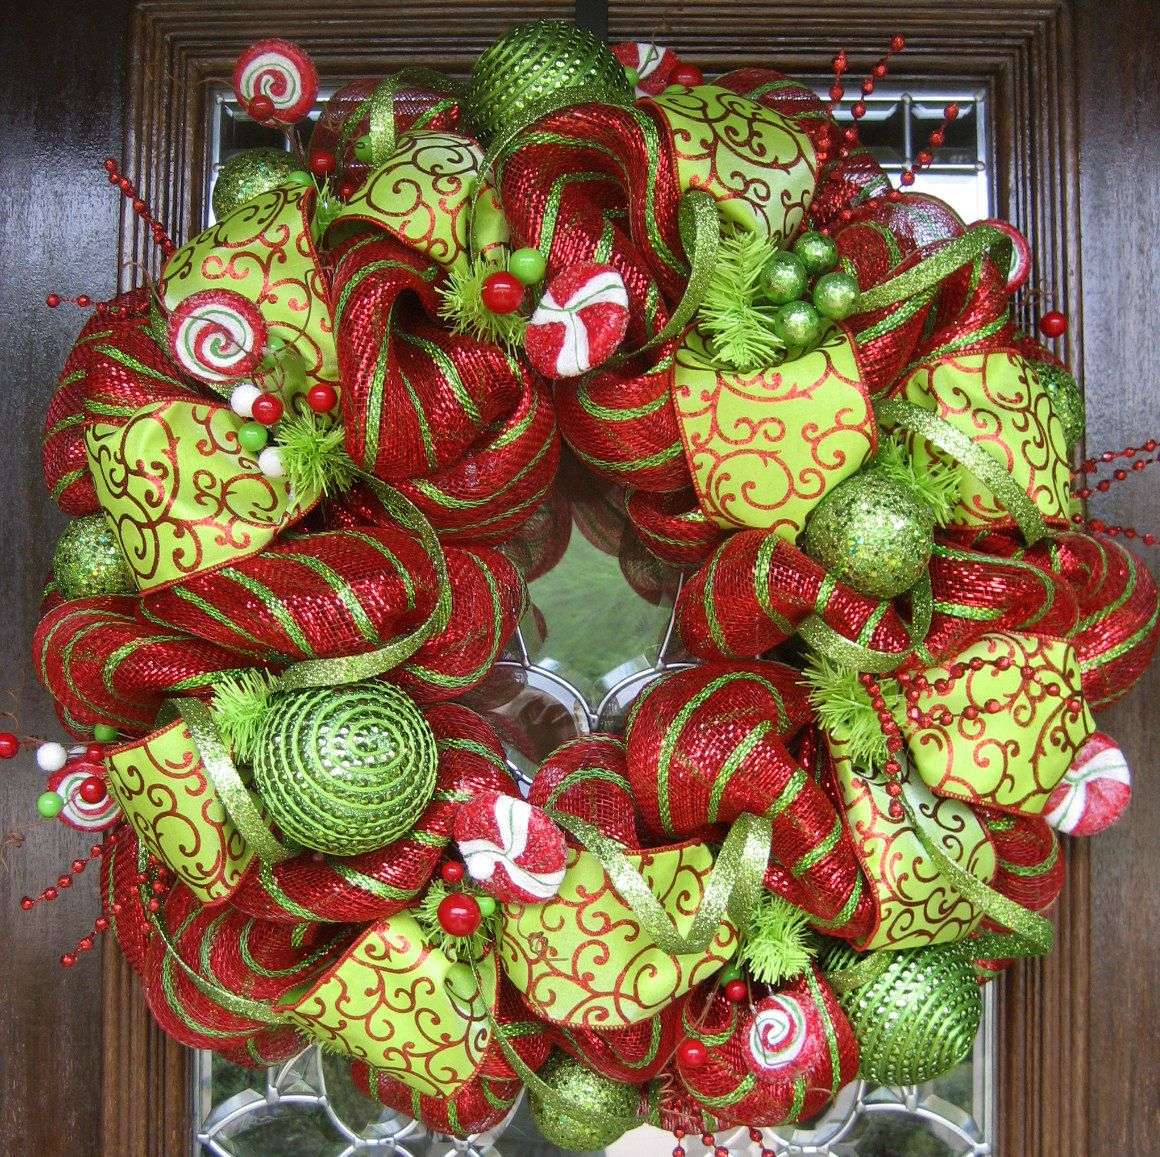 Deco Mesh Christmas Tree Wreath: Deluxe Deco Mesh WHIMSICAL CHRISTMAS WREATH 24 By